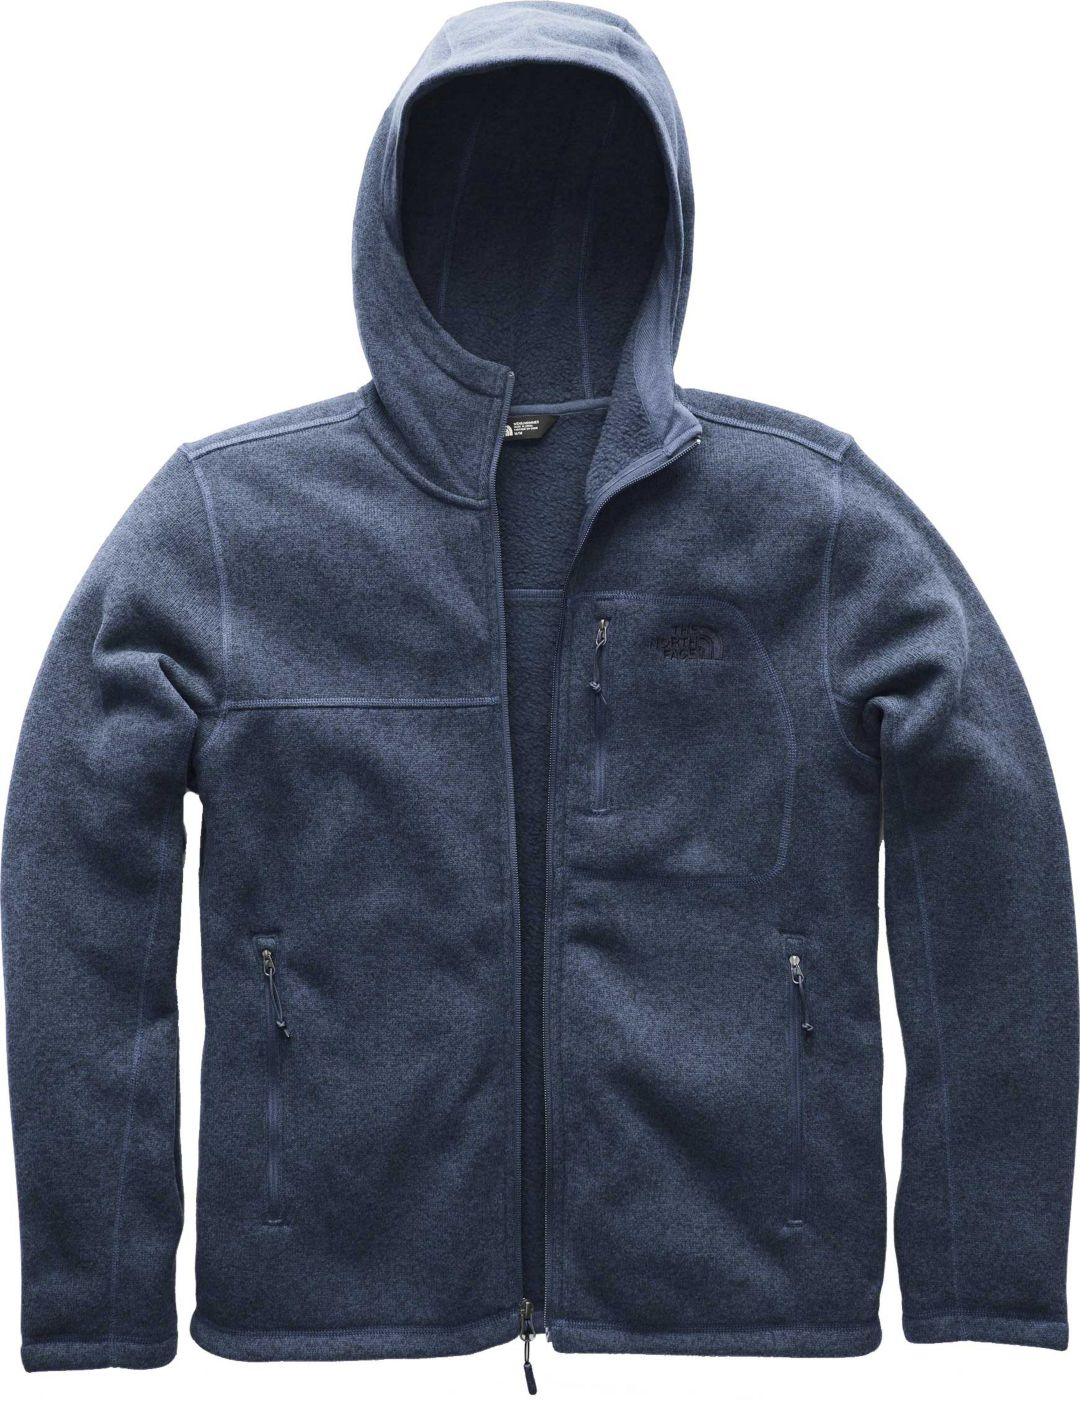 ab614d6d4 The North Face Men's Gordon Lyons Hoodie